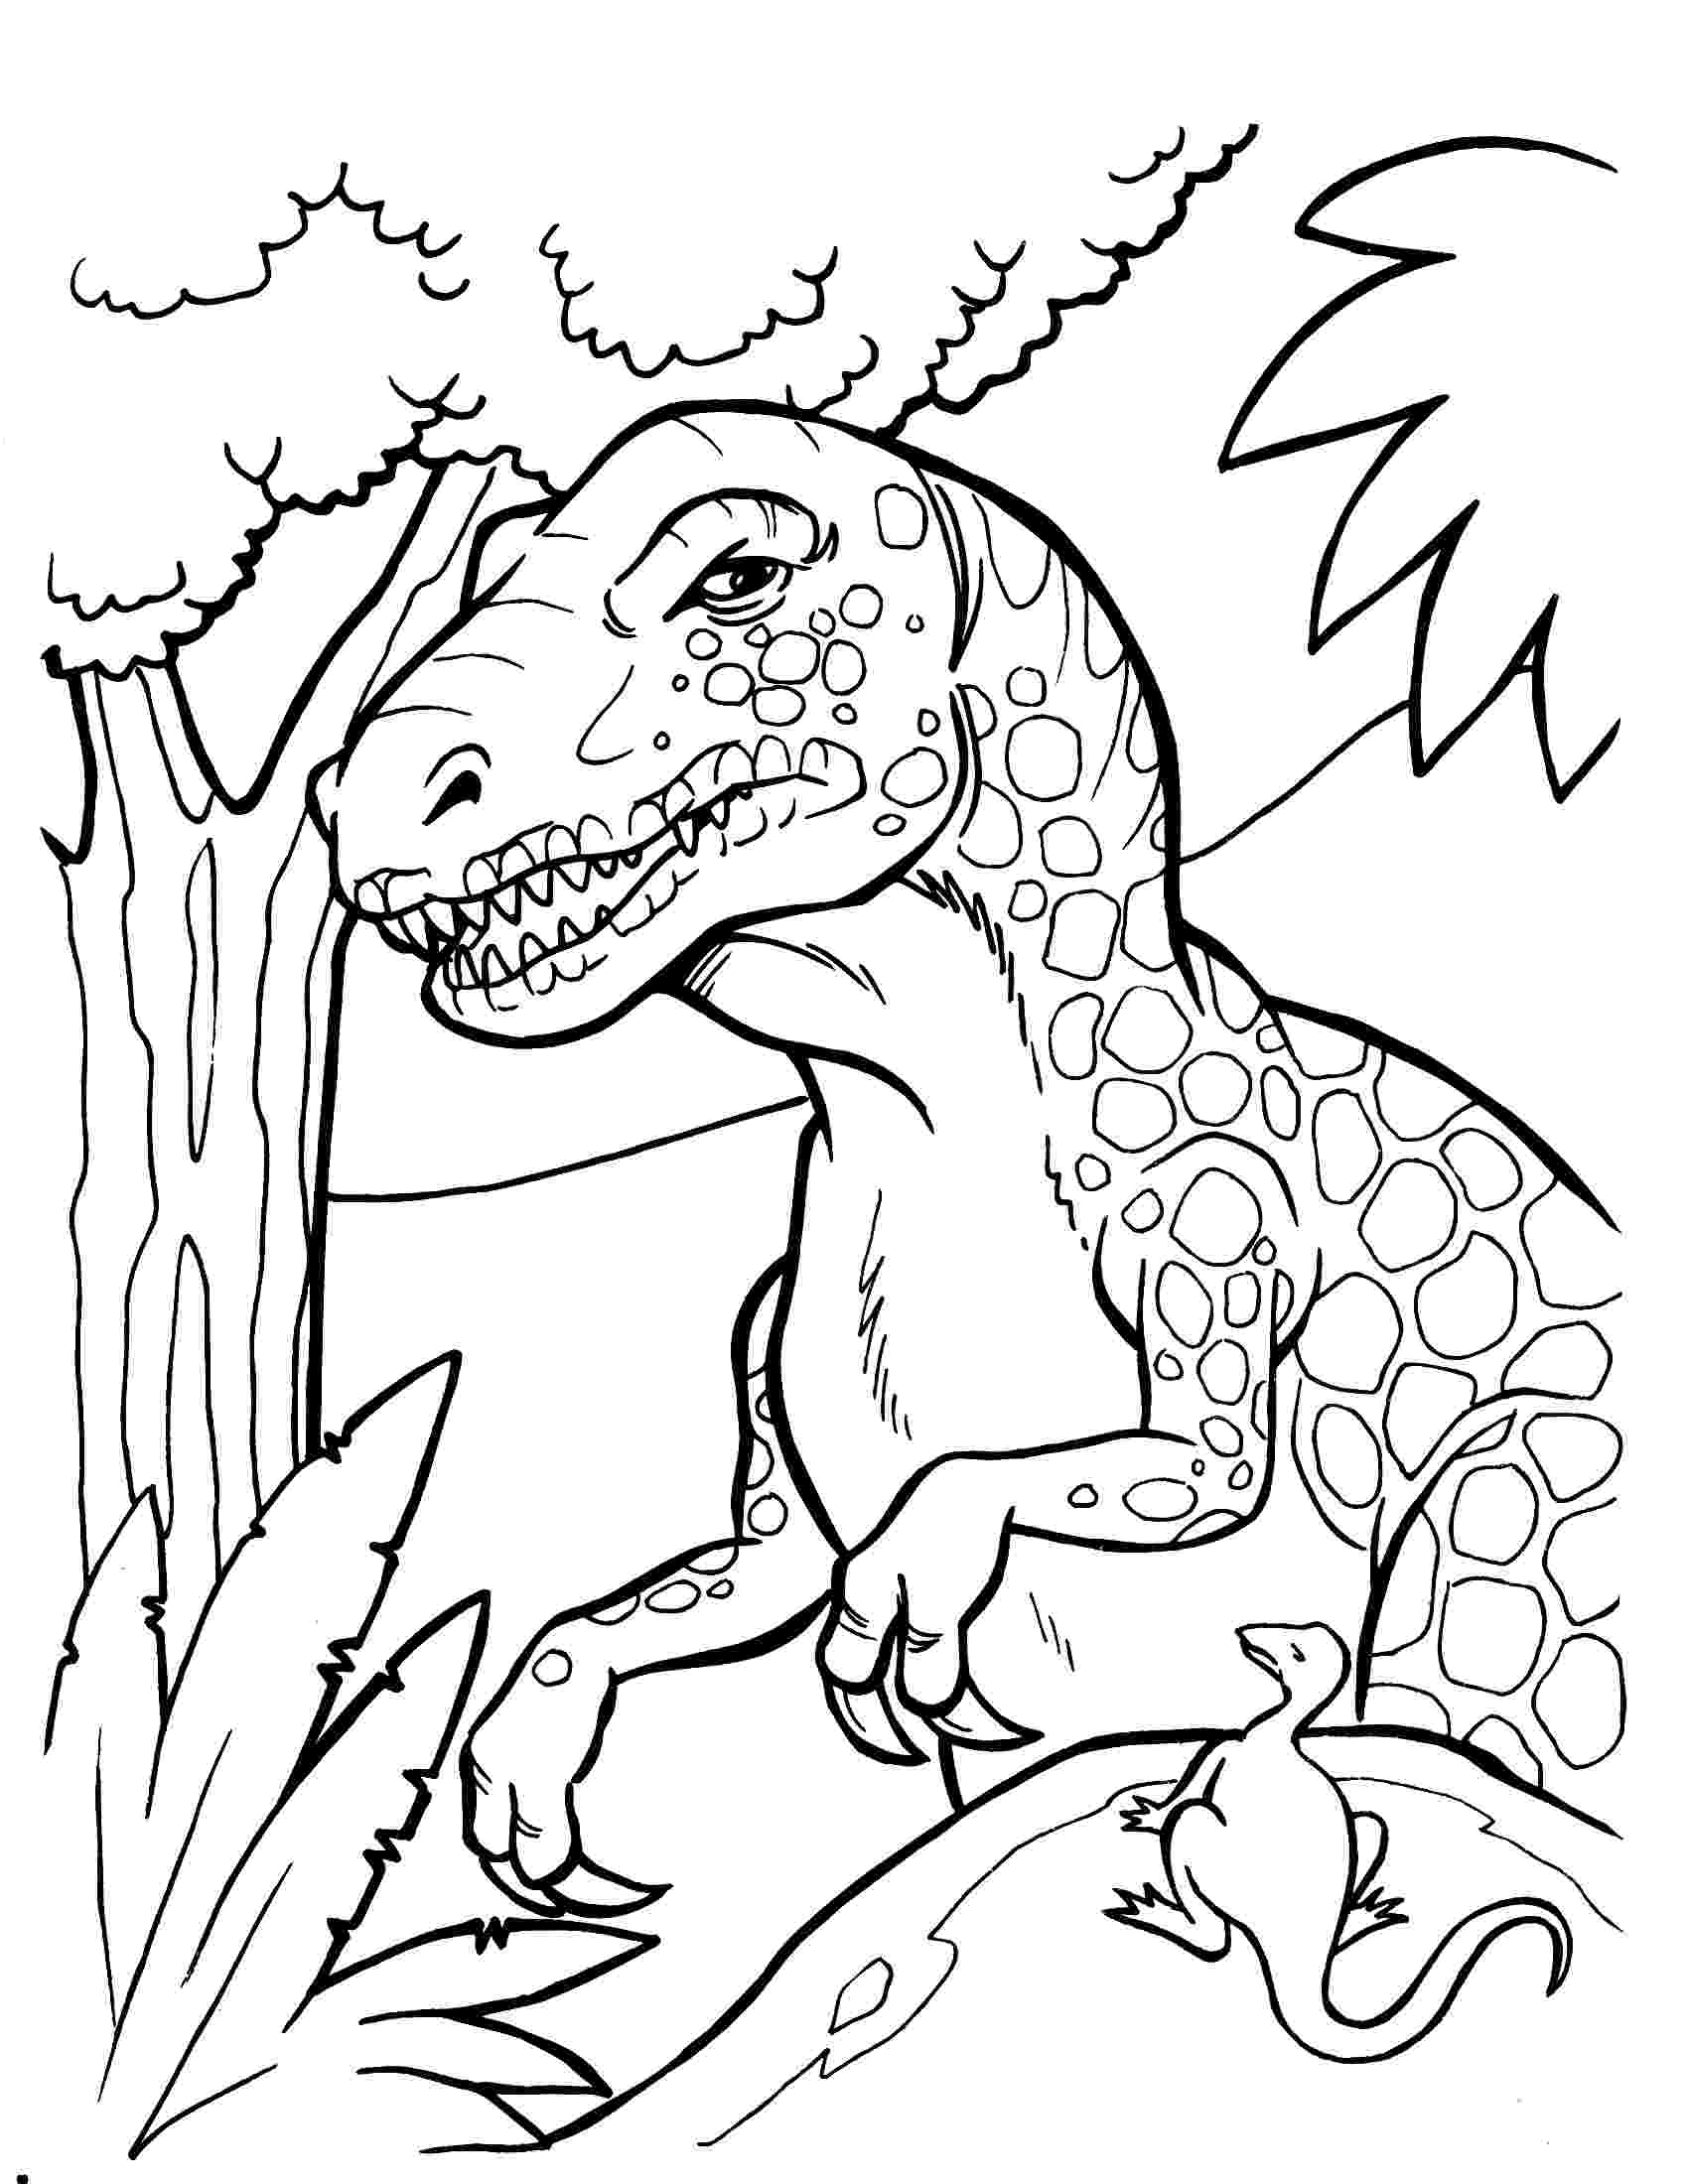 colouring pages of dinosaurs to print printable dinosaur coloring pages for kids cool2bkids to pages dinosaurs colouring print of